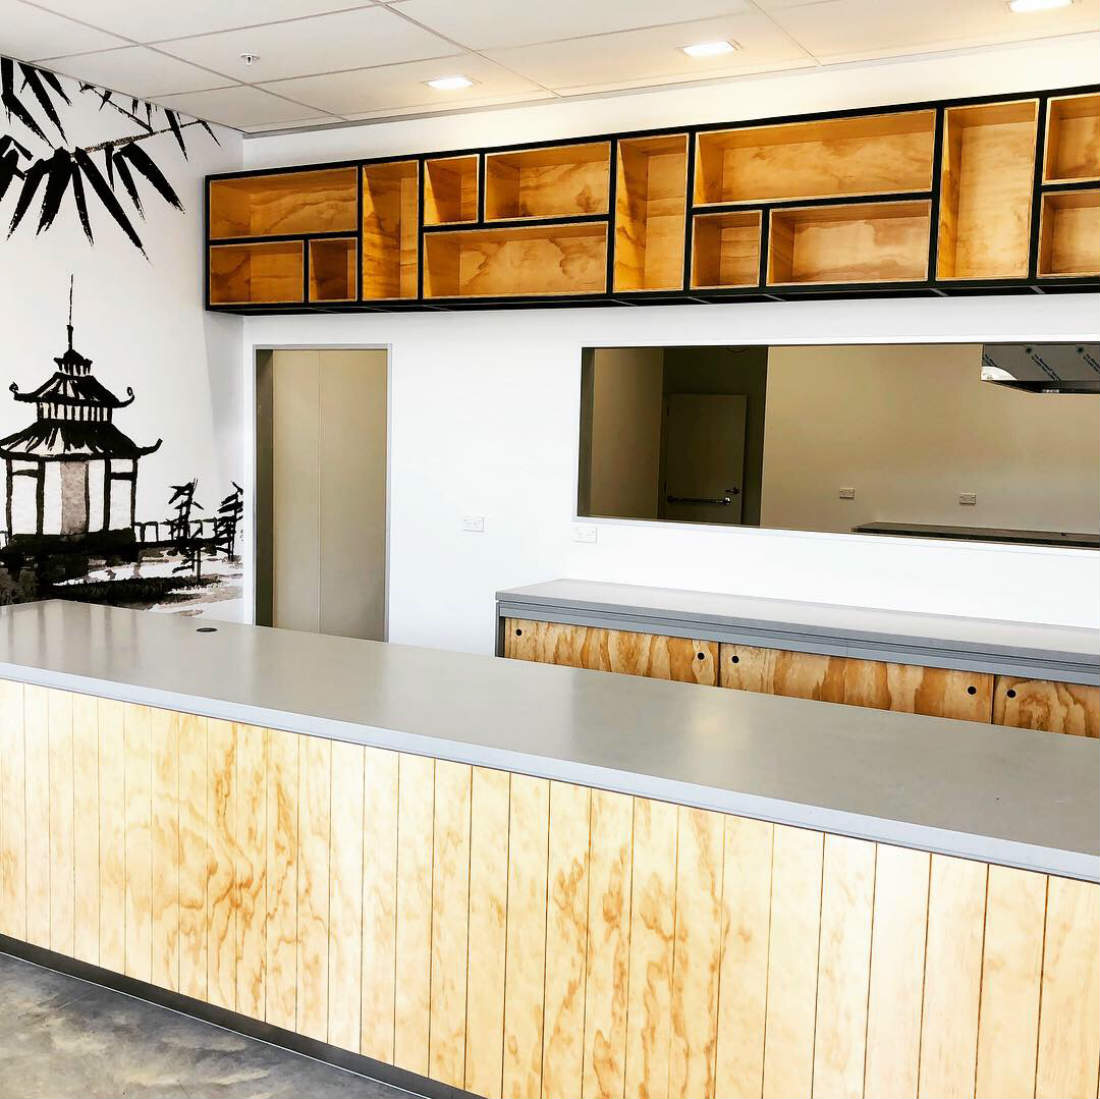 rcial Fitout - Musa Sushi 2 - Bay of Plenty